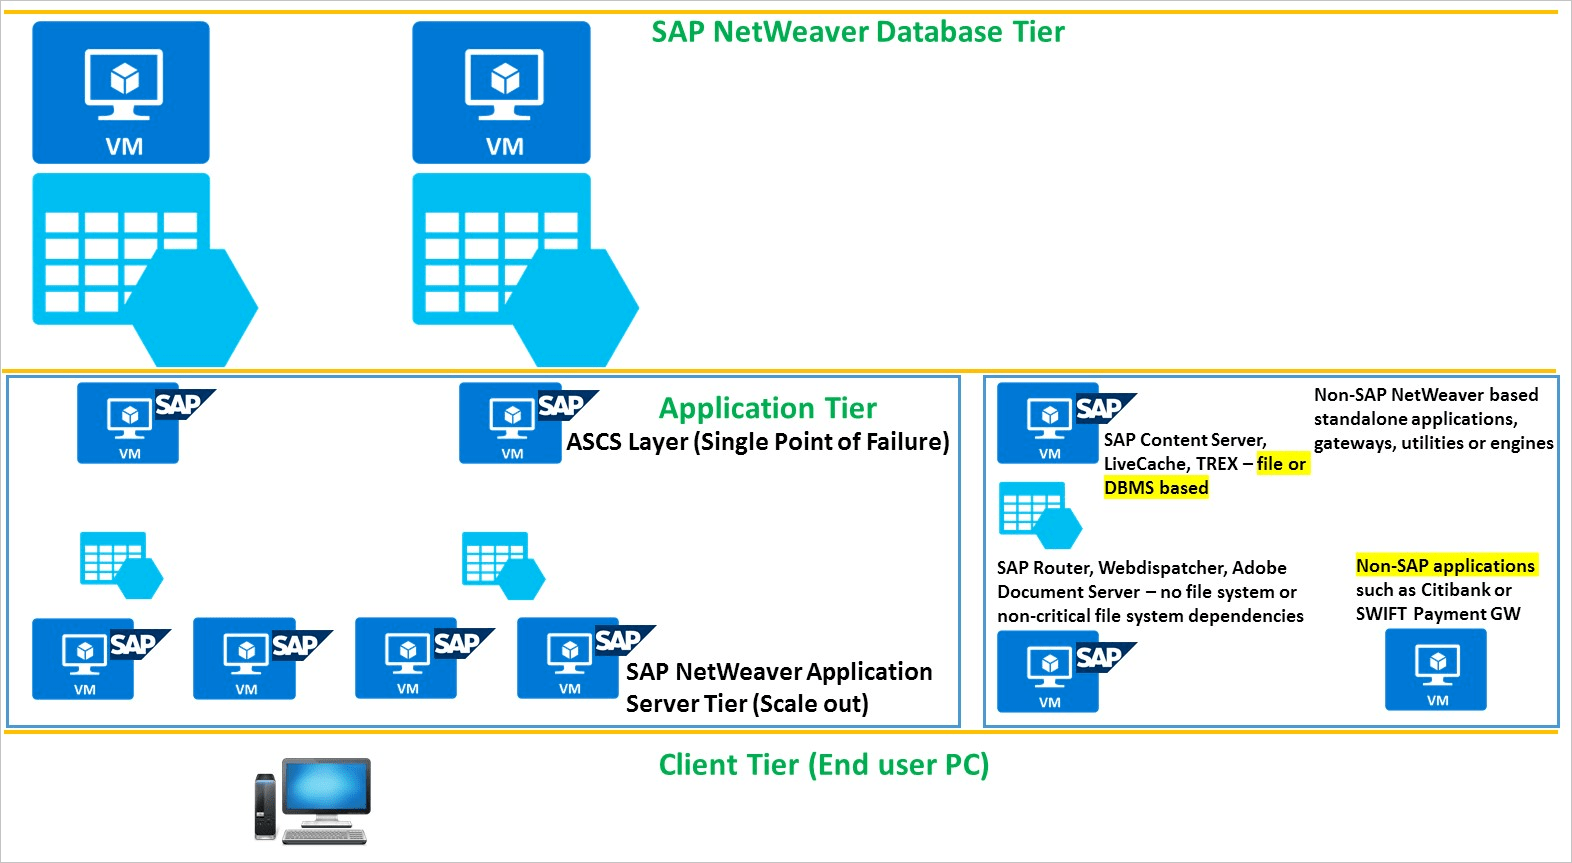 sap 3 tier architecture diagram 2002 chevy blazer radio wiring protect a multi netweaver application deployment